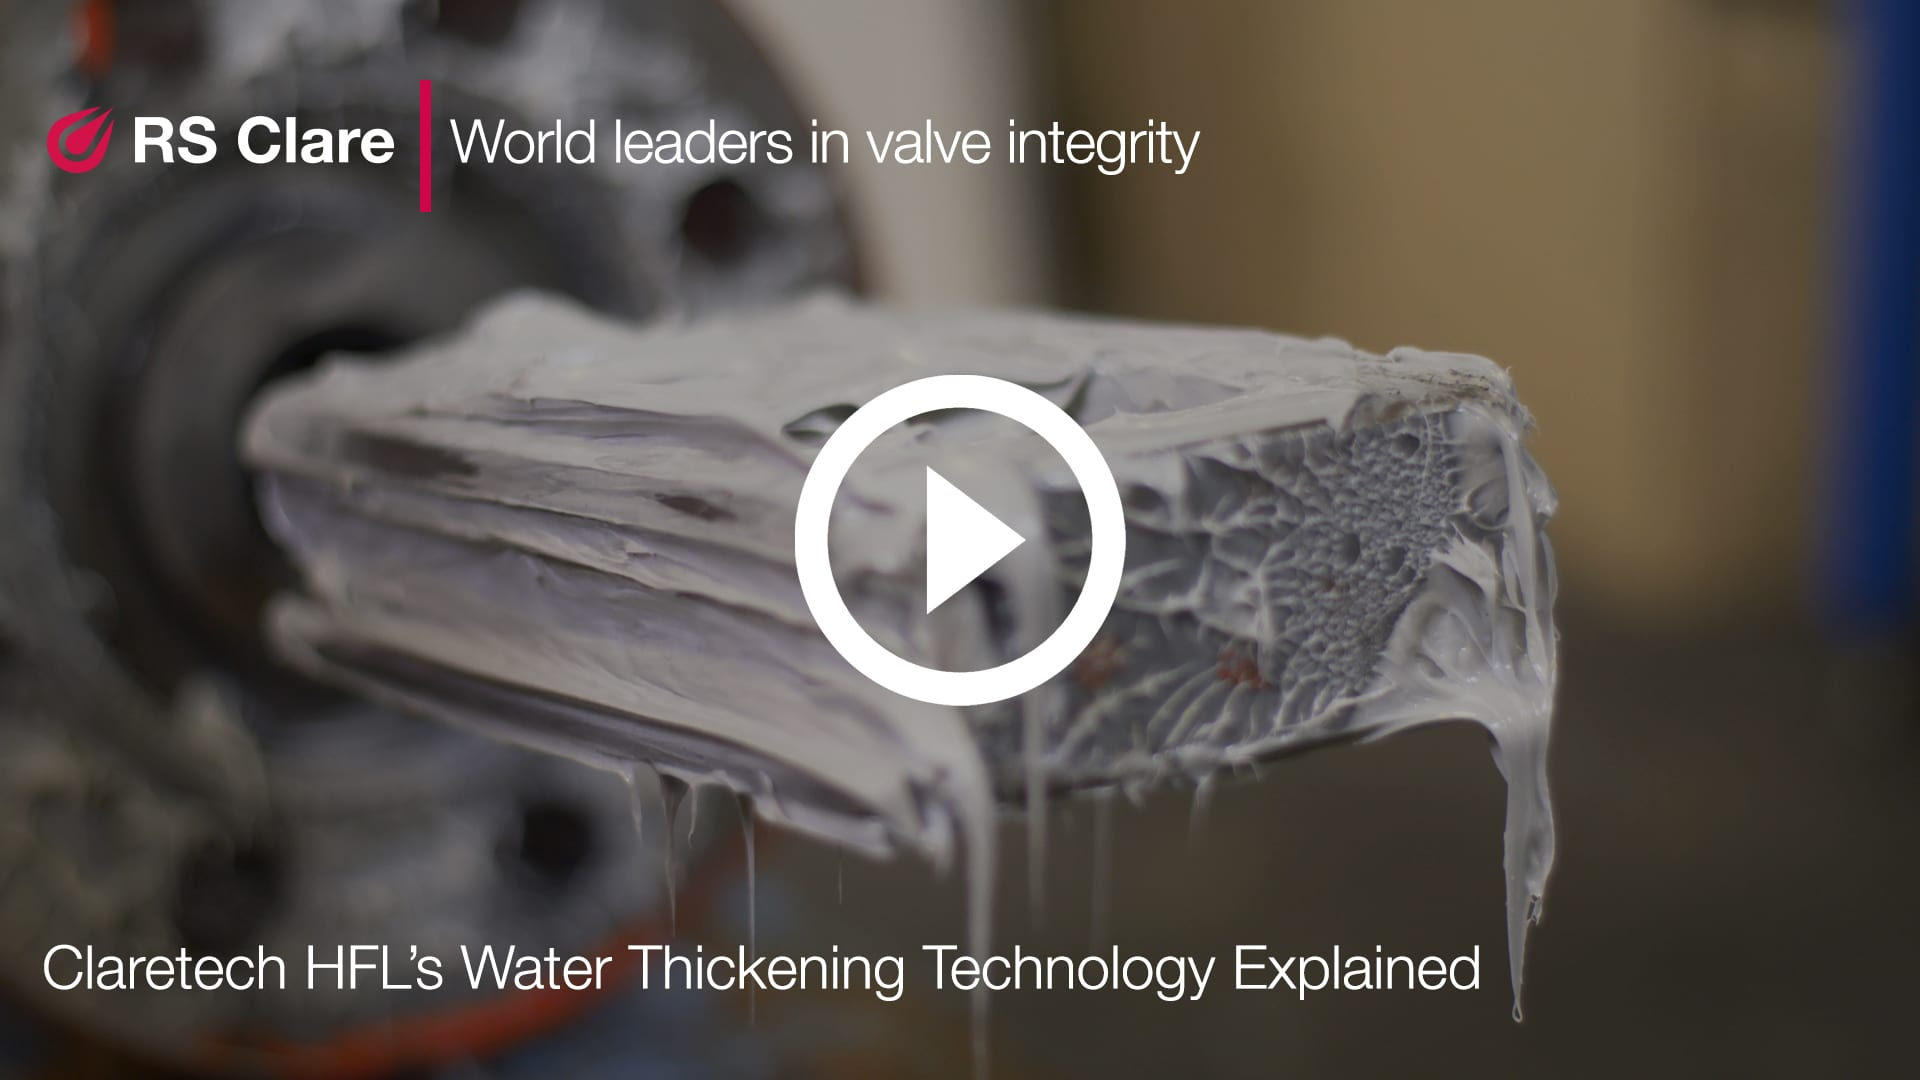 Claretech HFL Water Thickening Technology Explained for Water Resistant Gate Valve Lubricant